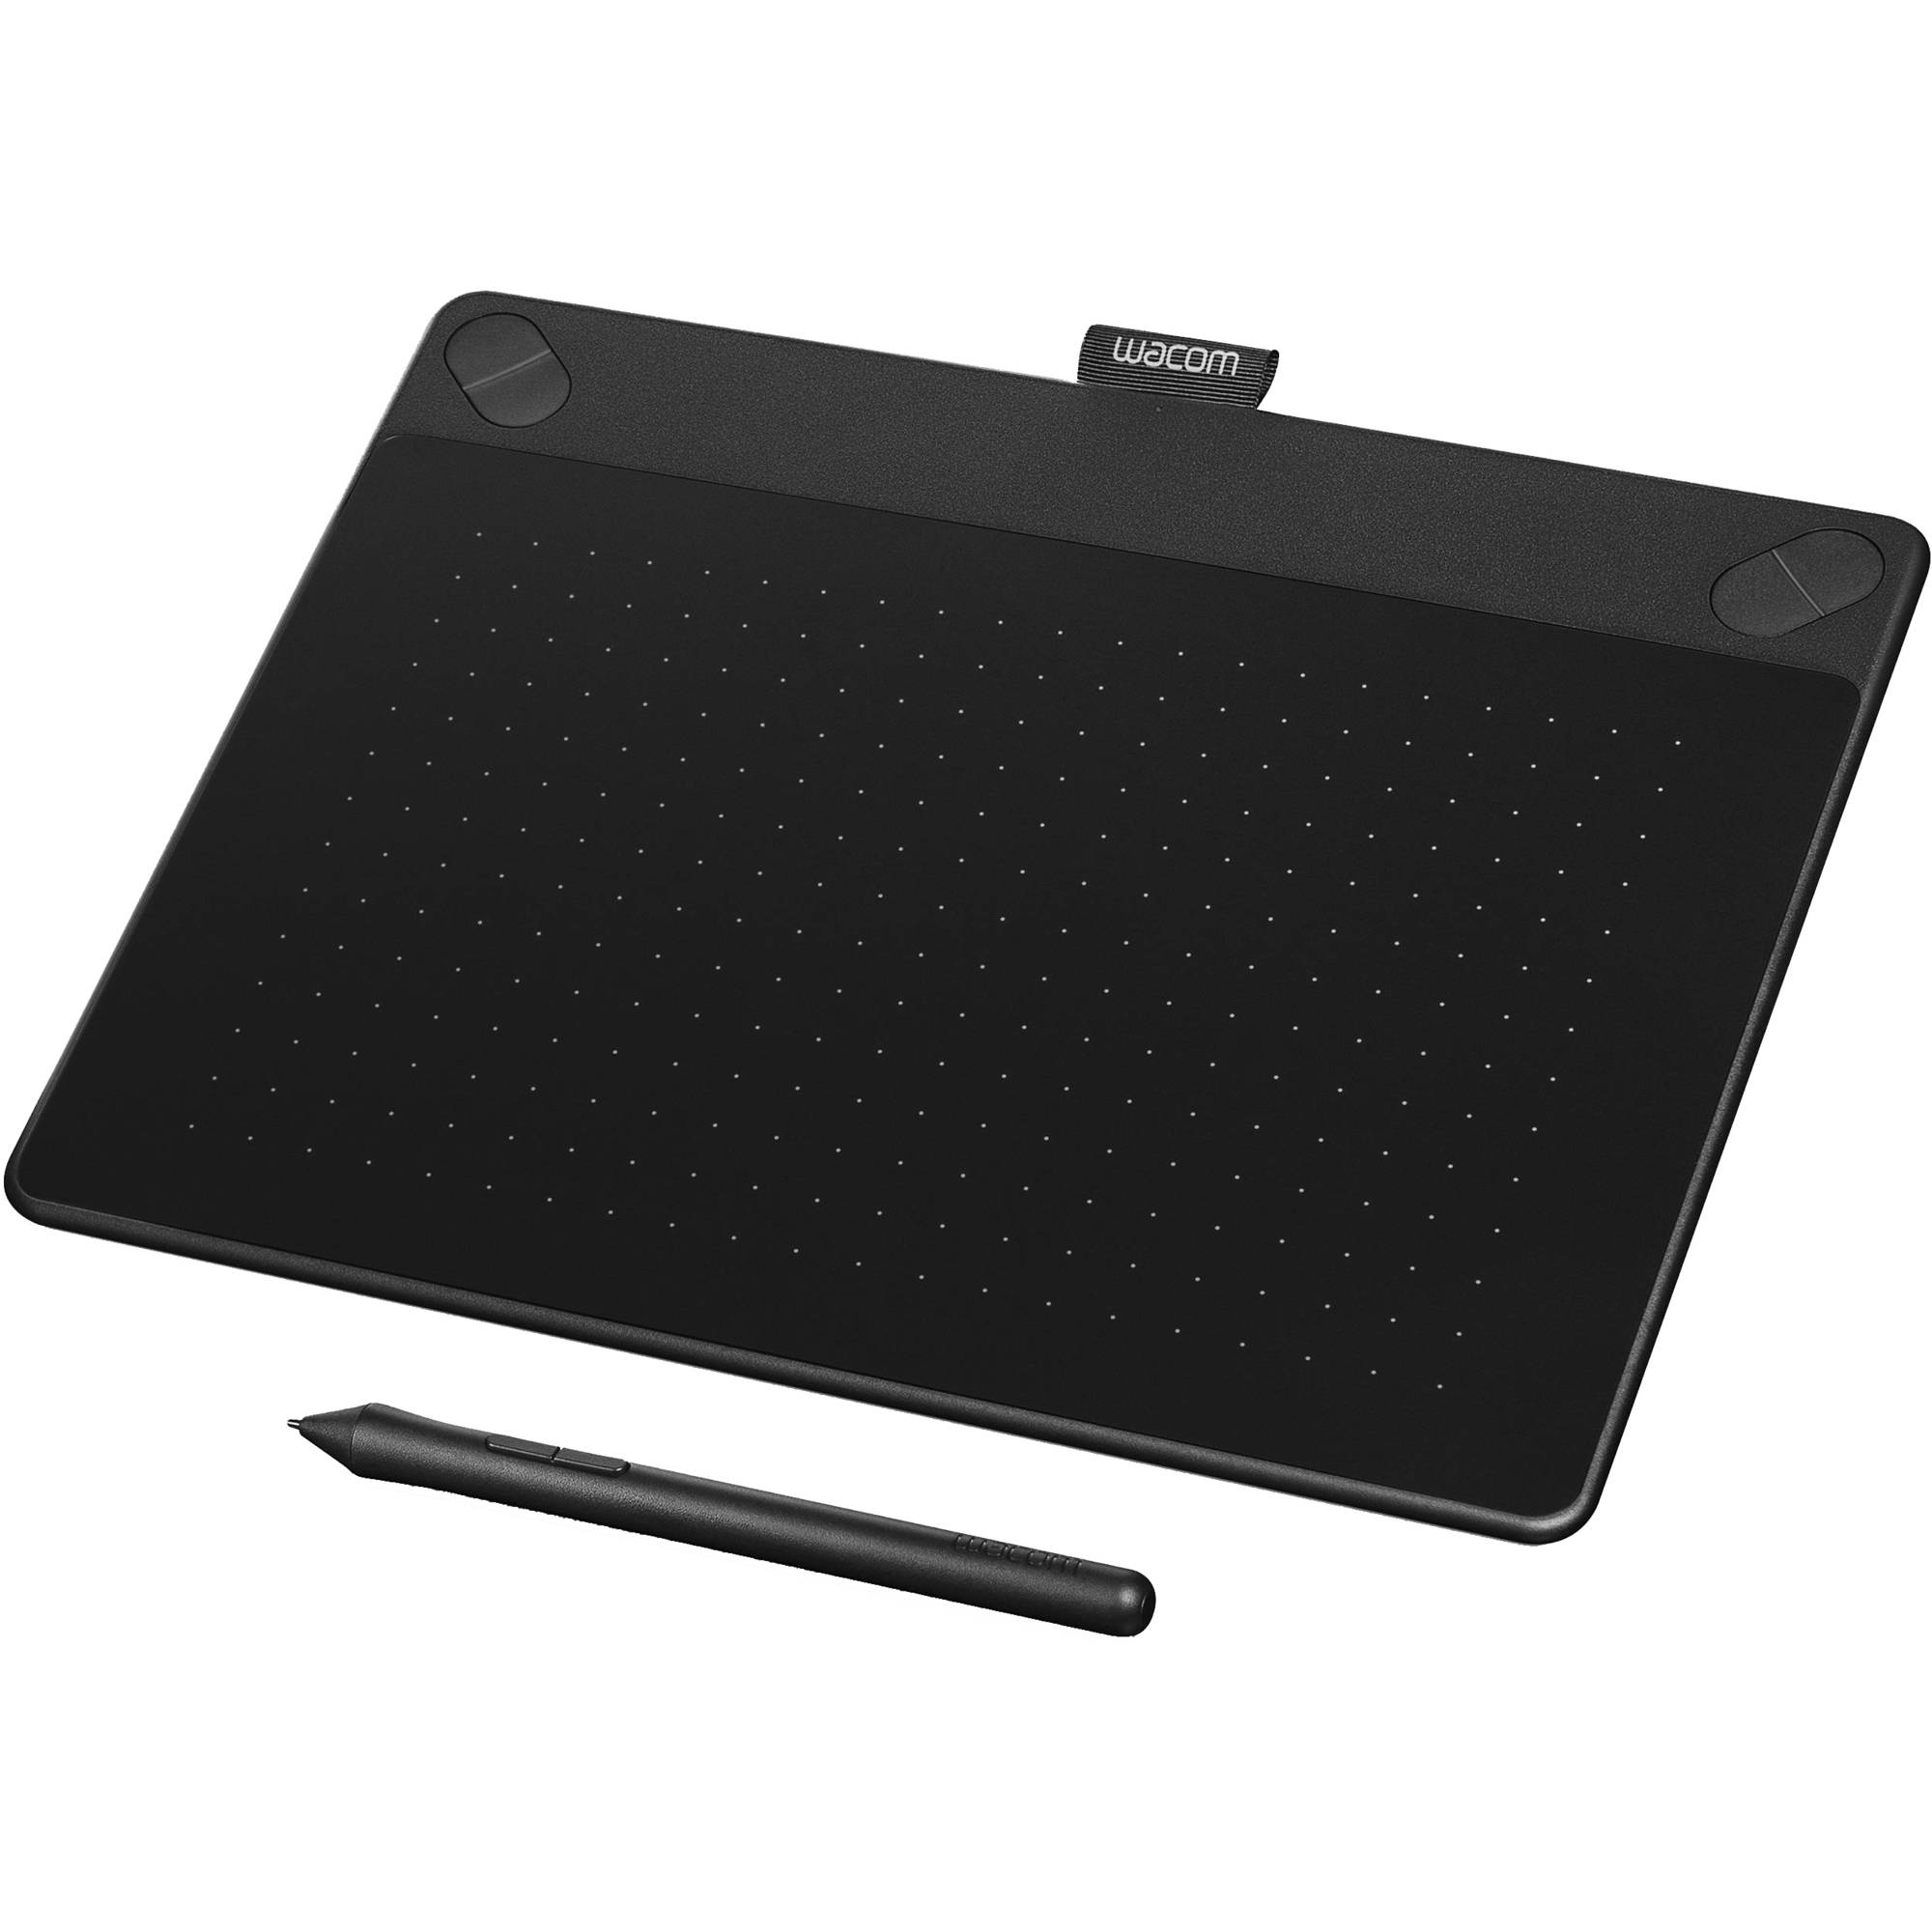 Wacom Intuos 3D Pen & Touch, Black, Medium, Software Included (CTH690TK) by Wacom